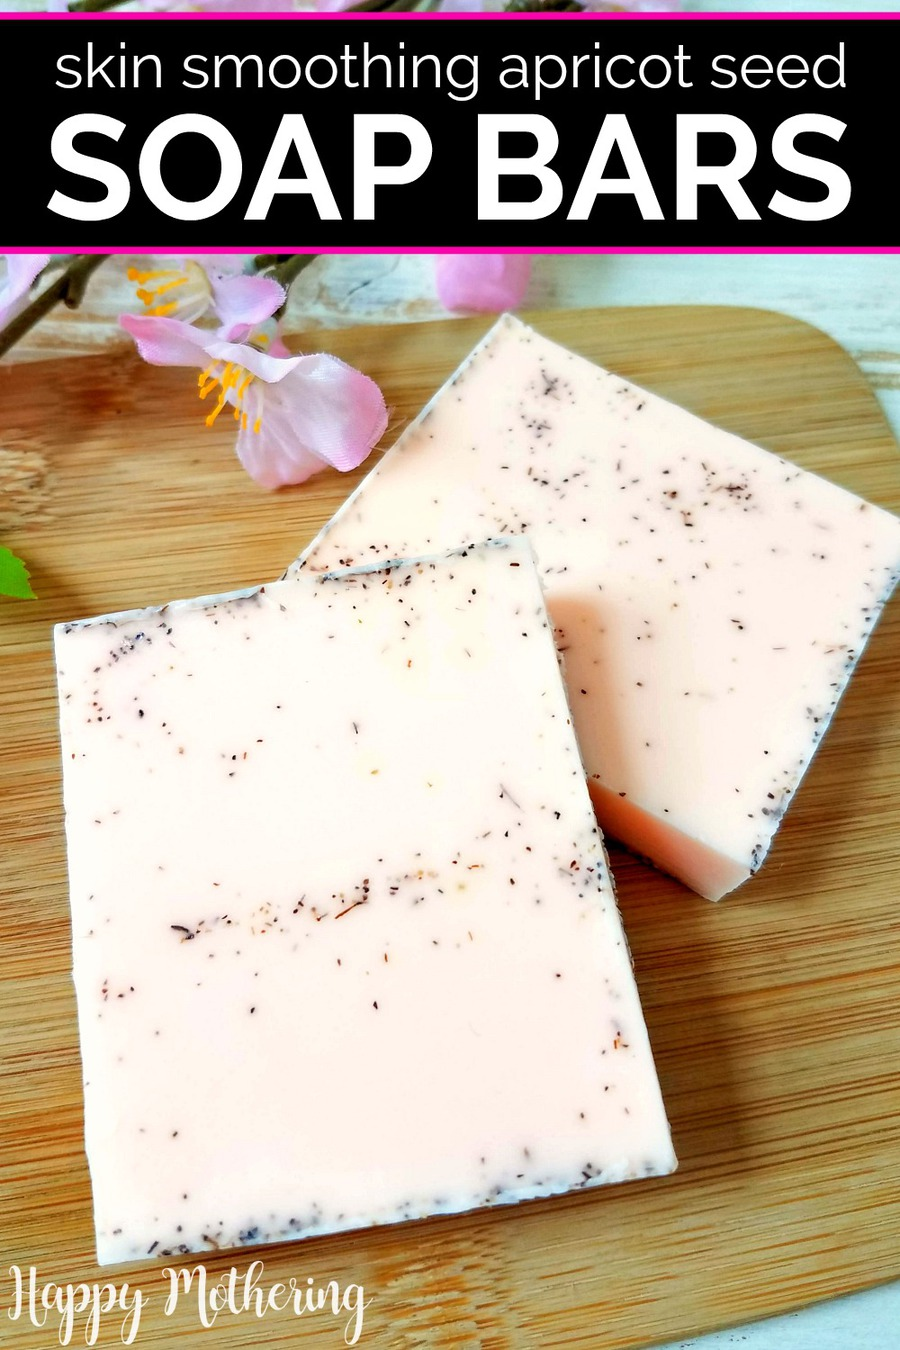 Looking for cute homemade gift ideas or DIY beauty products with multiple uses? Learn how to make these natural Apricot Seed Soap Bars that cleanse and exfoliate skin at the same time.